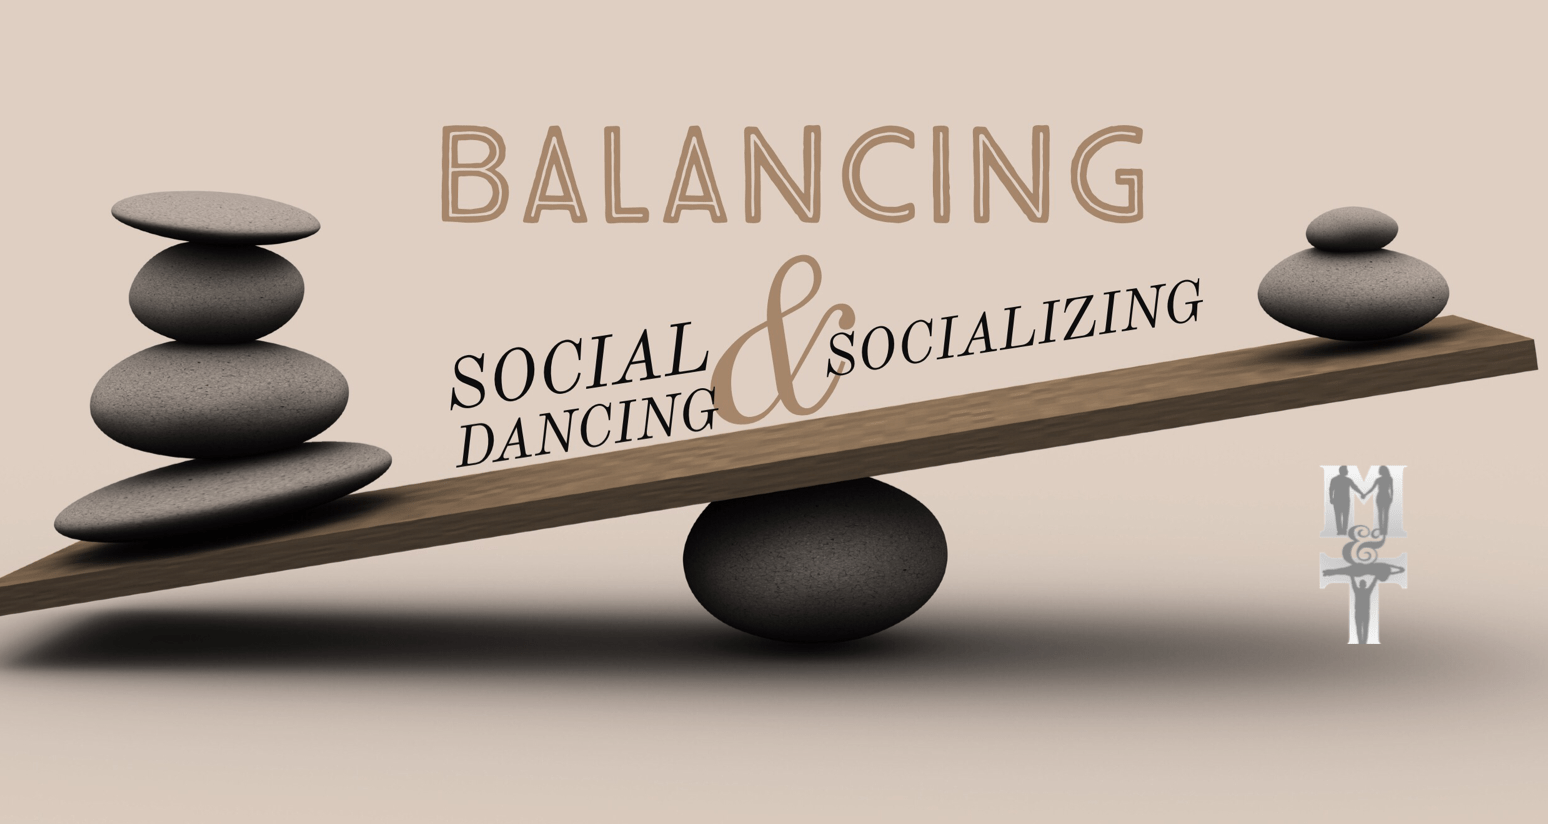 Some practical ideas on how to fill your bucket in the social department. Pass it on - you know you have friends who need this. #wcscoachscorner #sharingiscaring #dancewellness #socialwellness